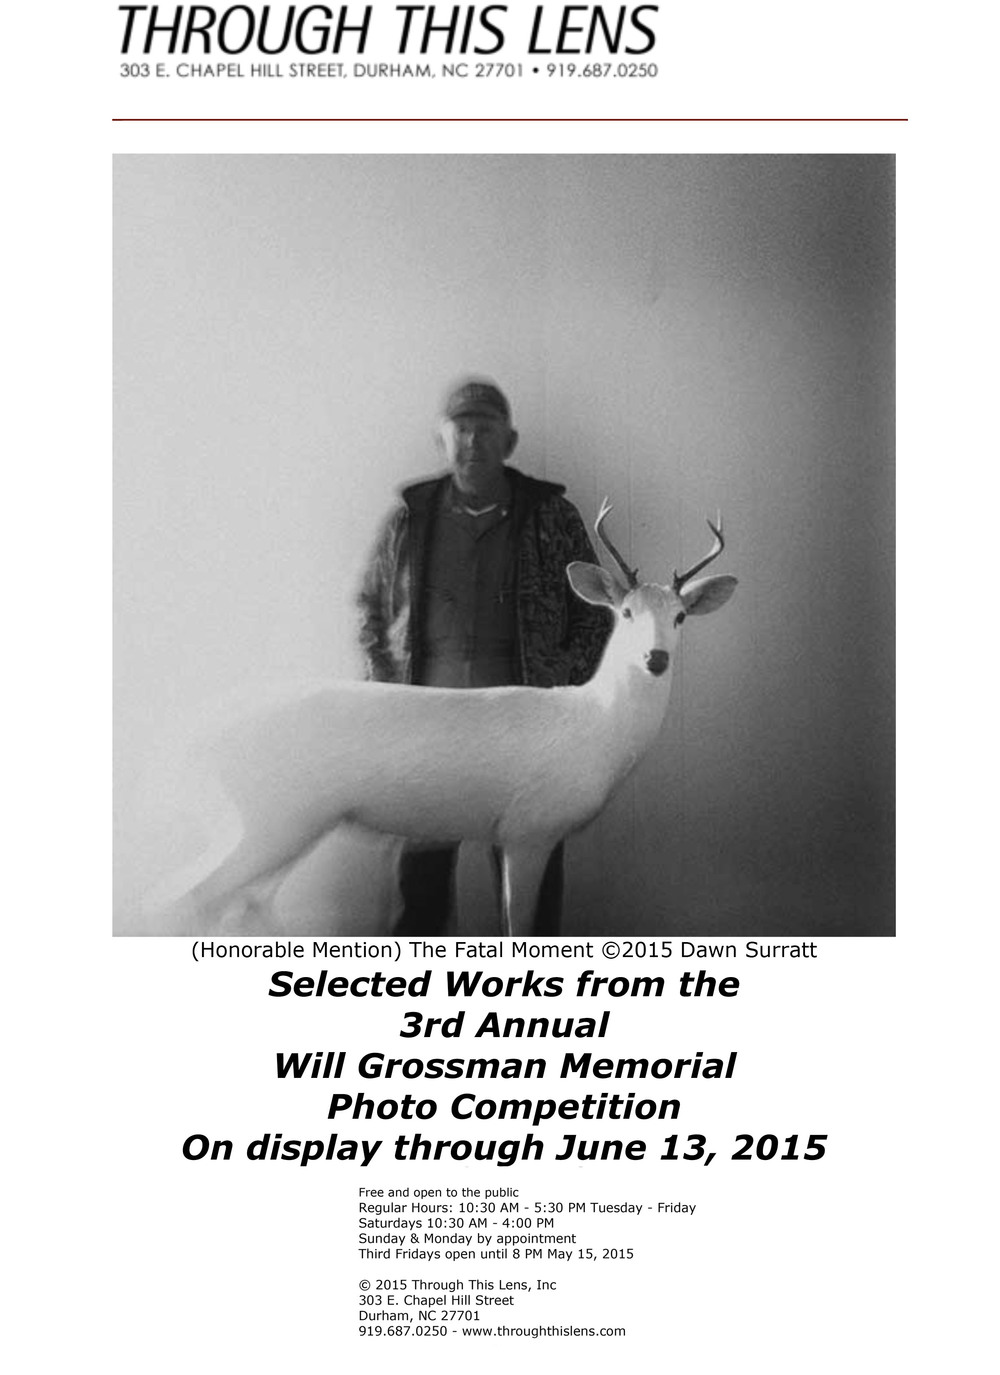 Honored to be a part of this exhibition at the Through This Lens Gallery, Durham, NC.